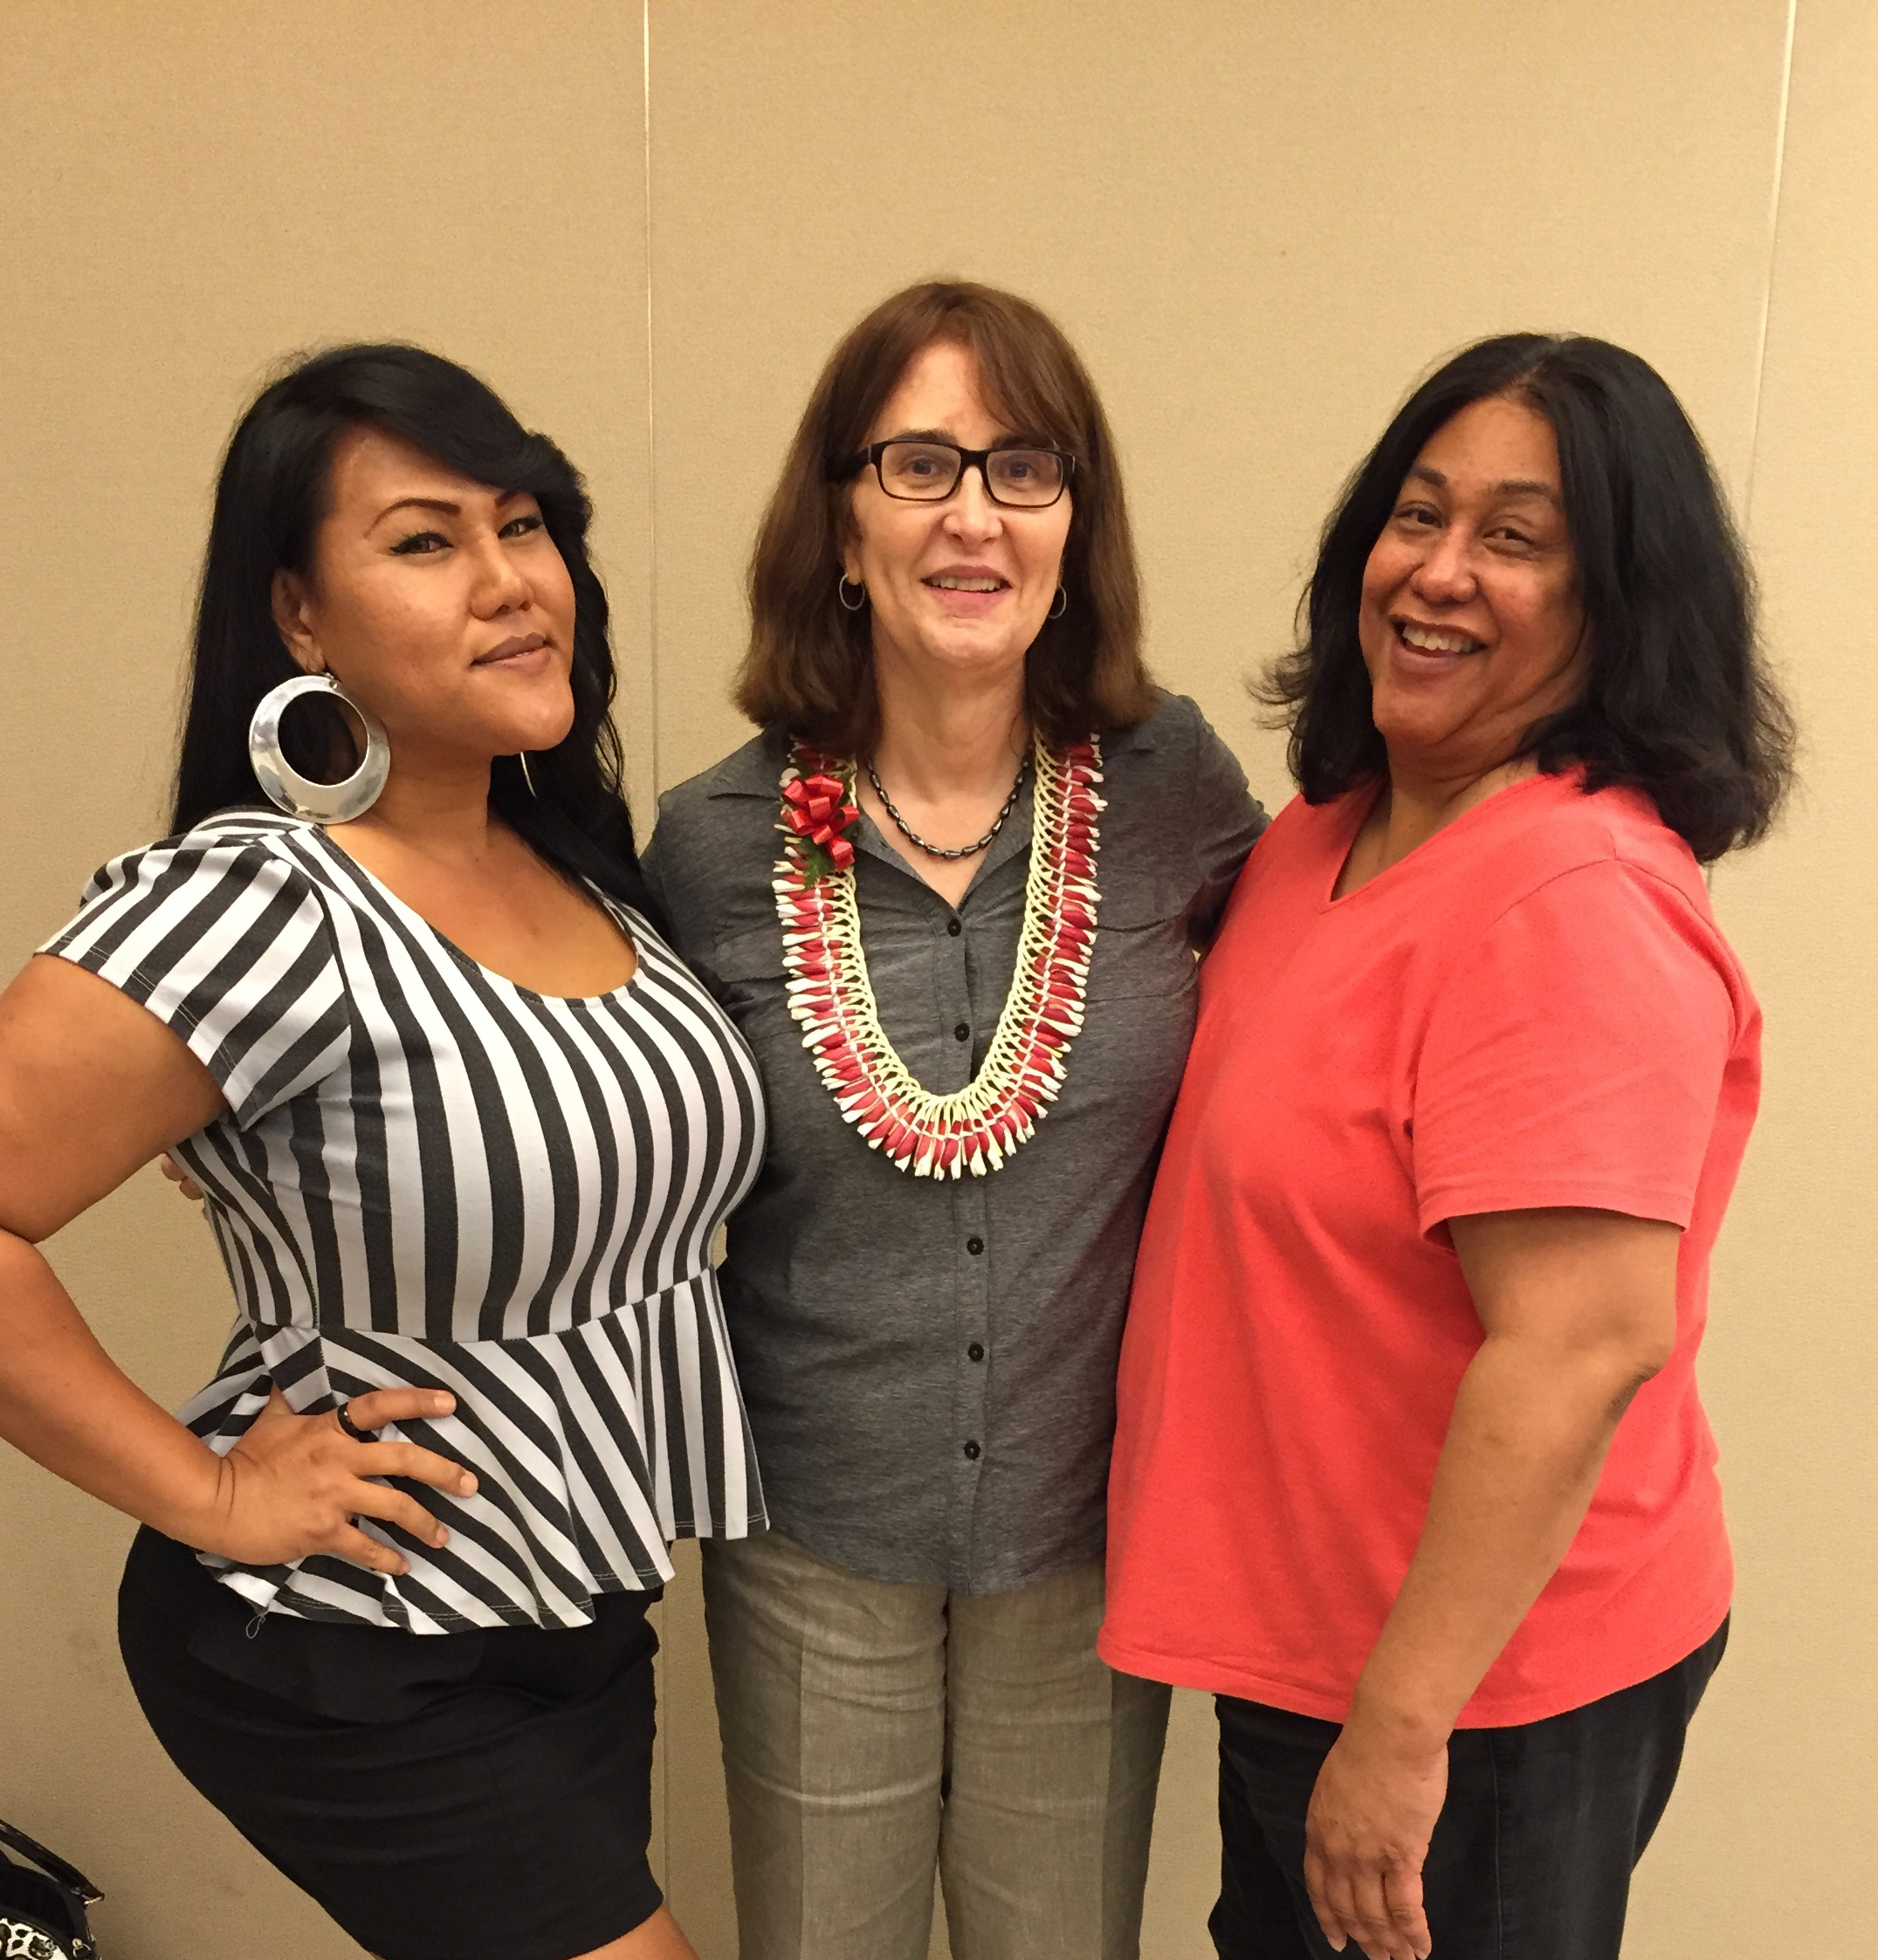 NCTE Executive Director, Mara Keisling (center) with Kathy Capua (left), Life Foundation and Sina Sison (right), Life Foundation)